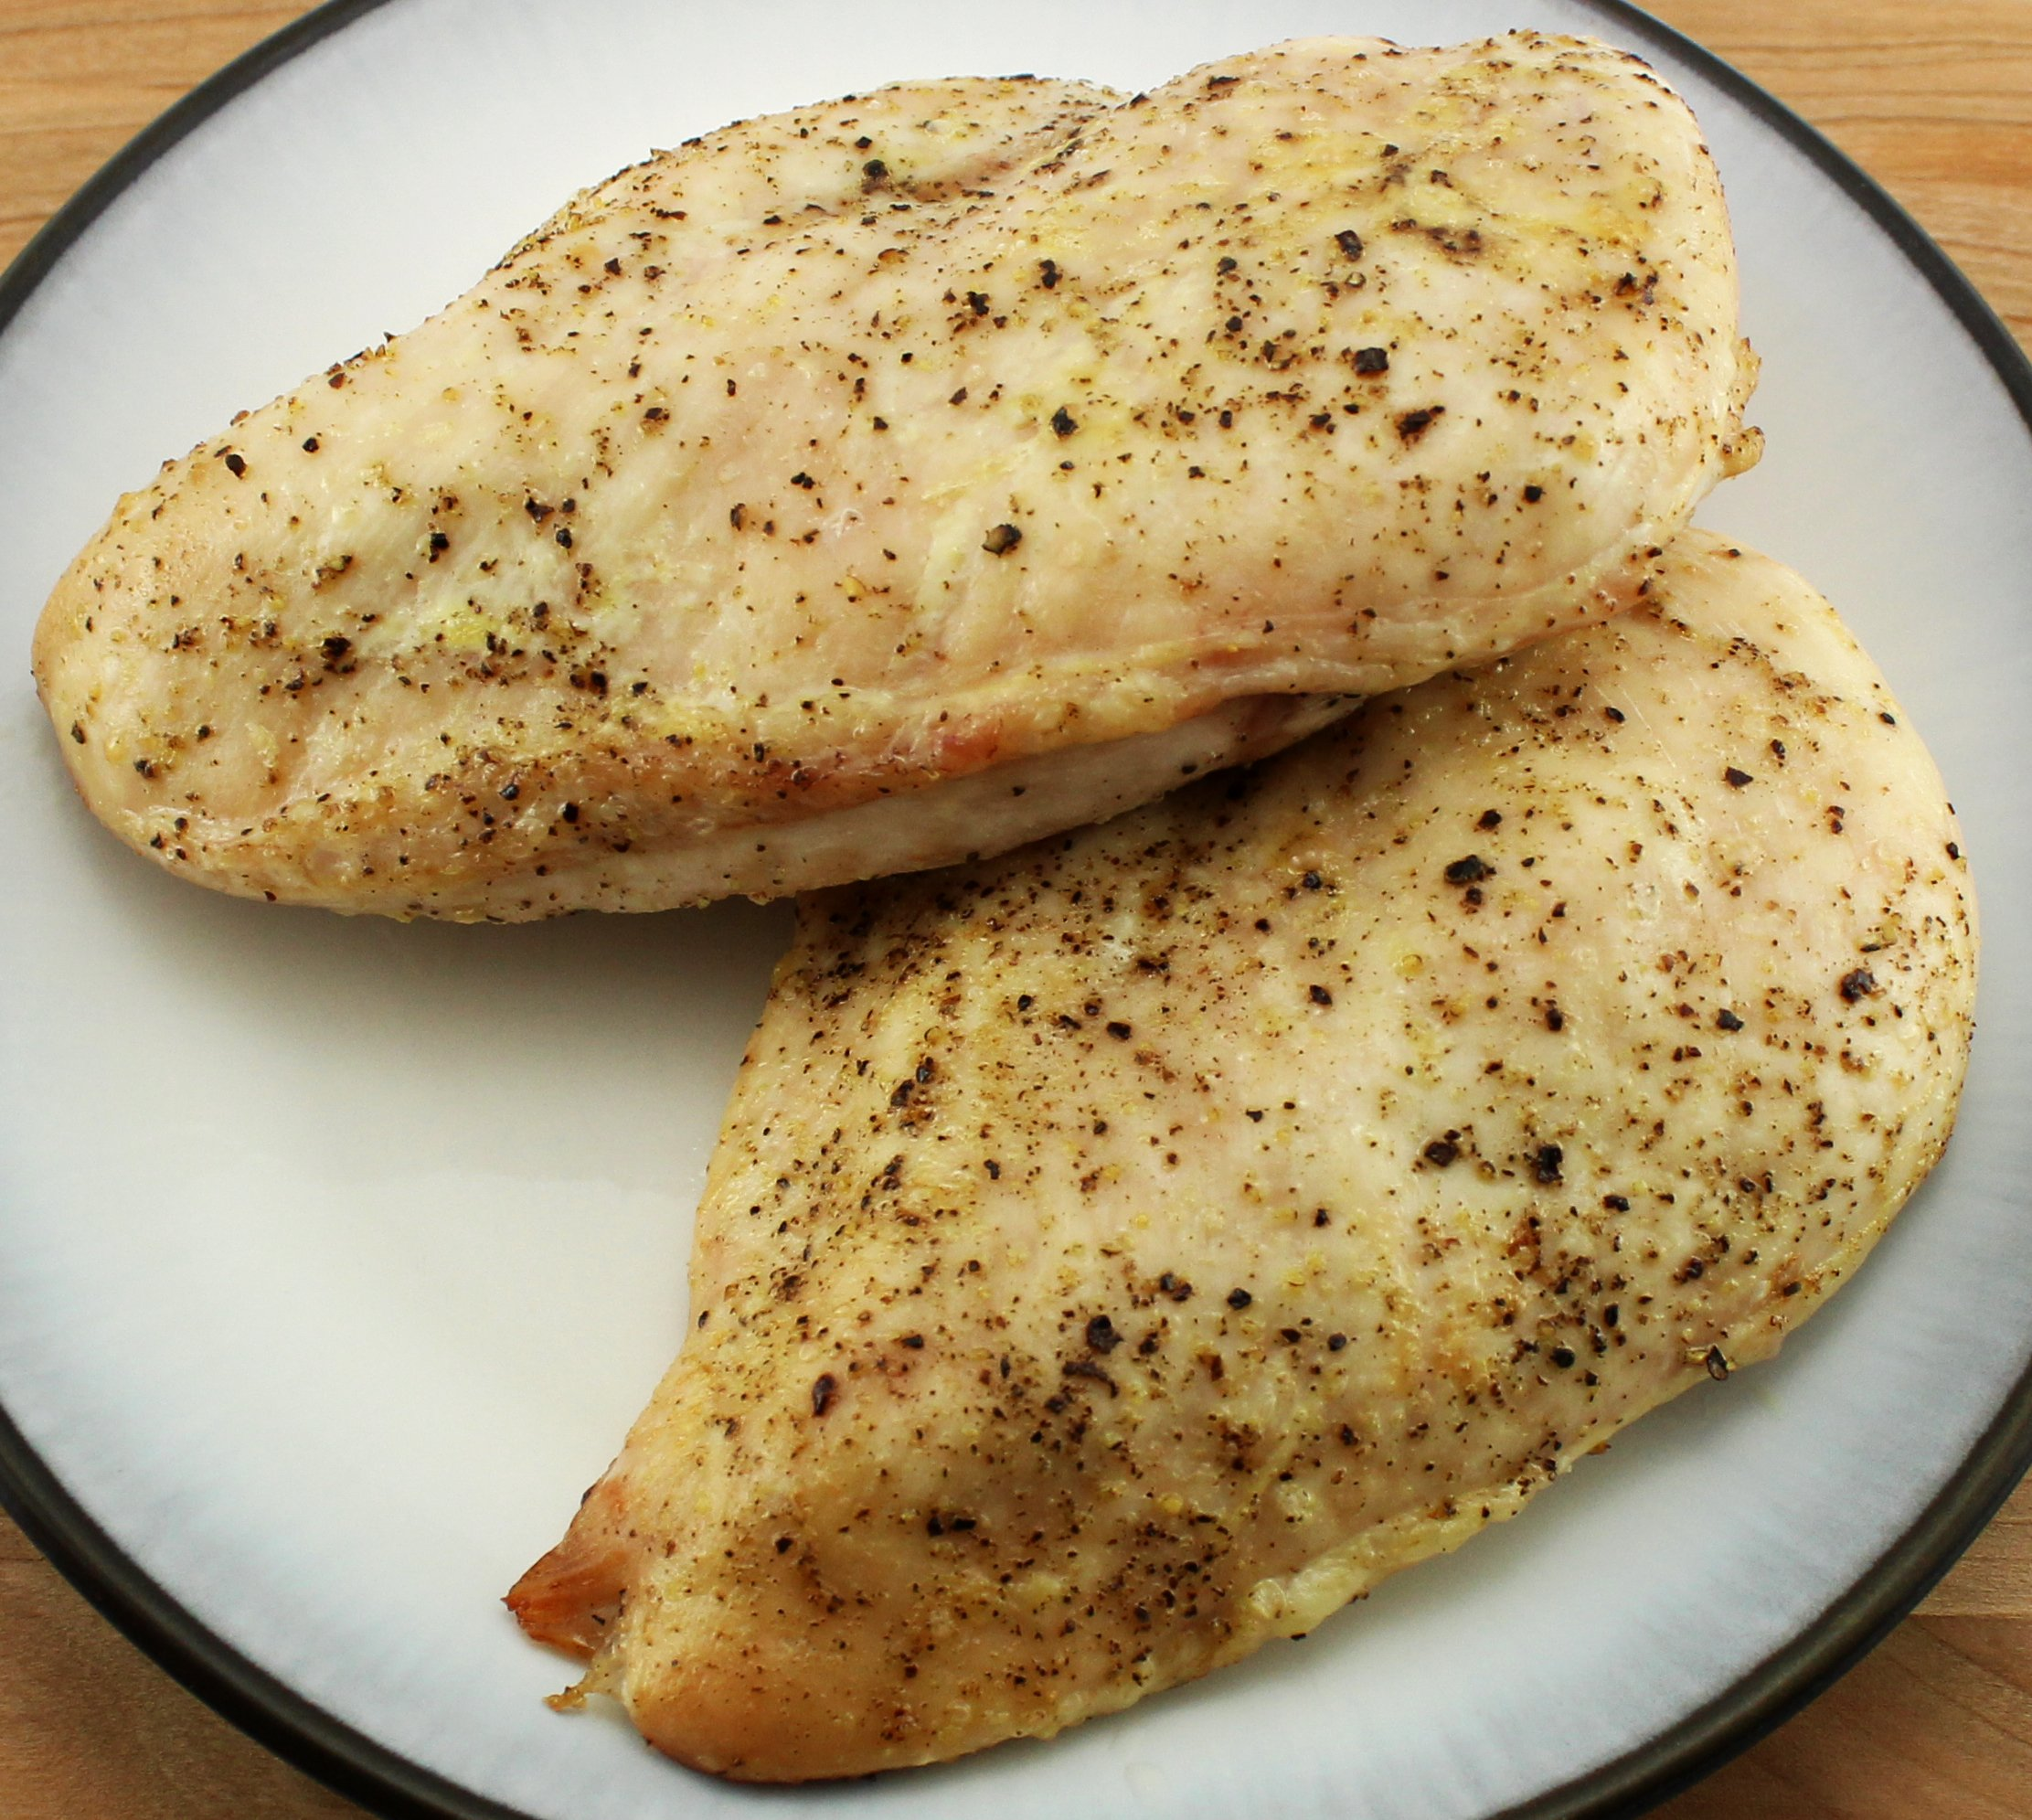 Oven roasted chicken breast on a plate